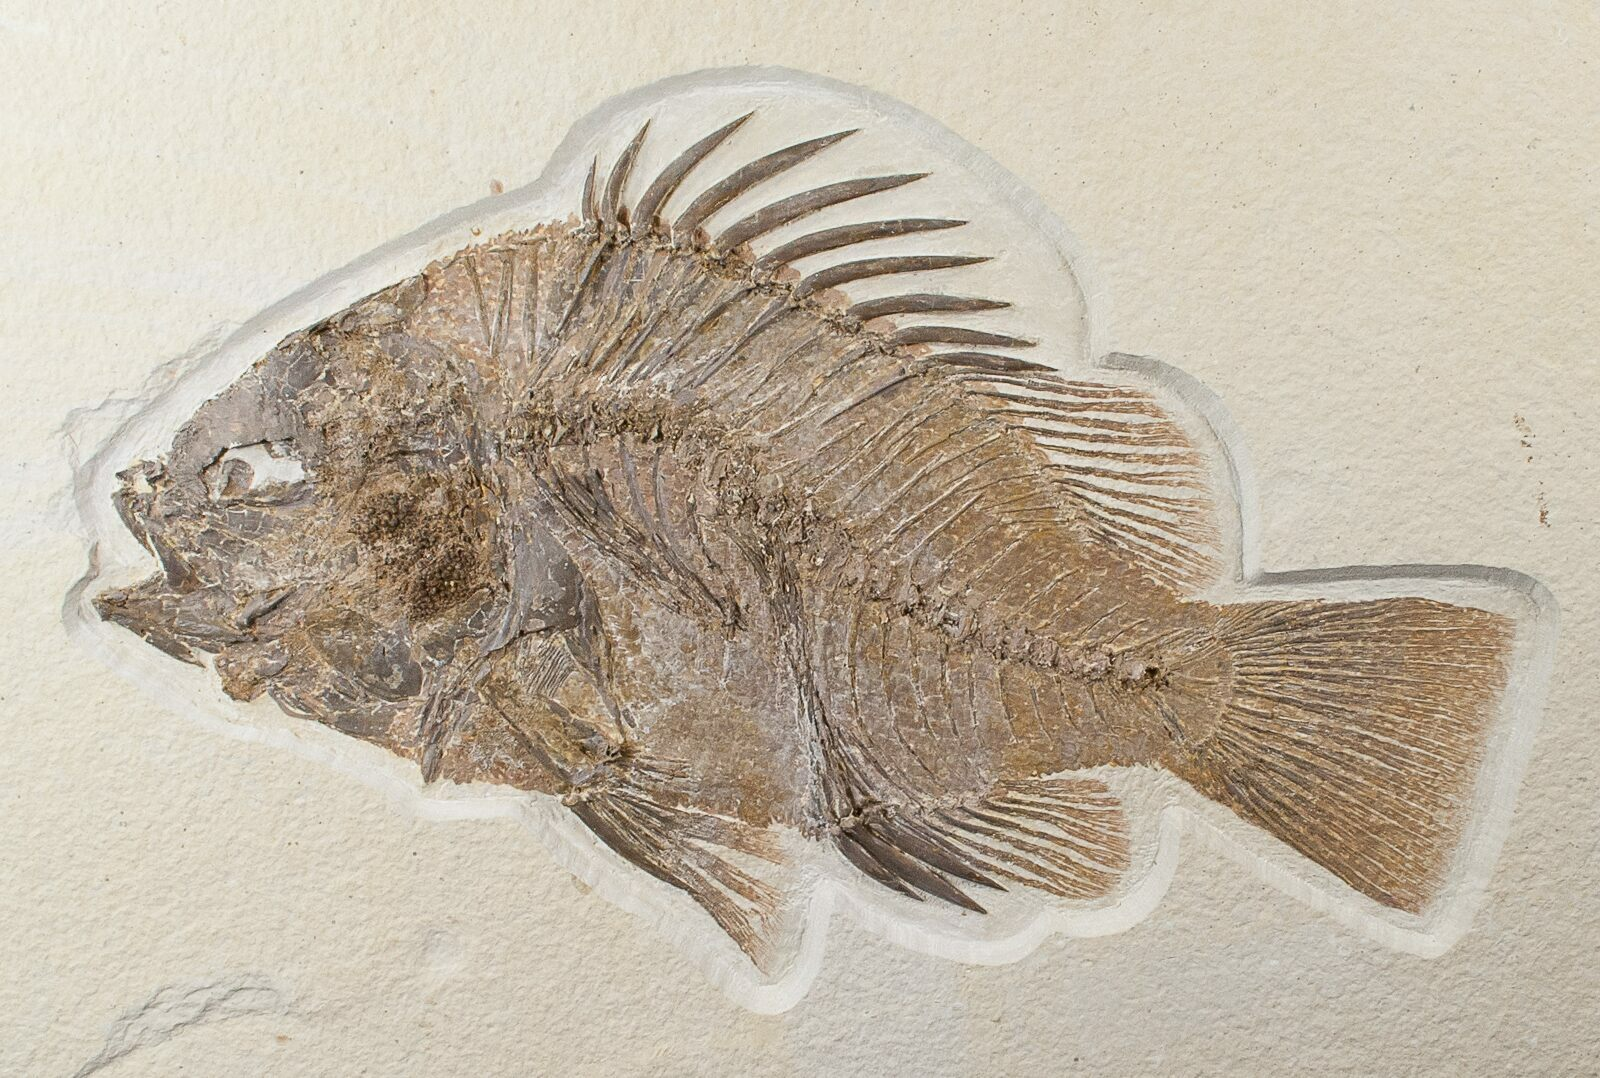 Top quality 10 priscacara serrata for sale 15578 for Fish fossils for sale